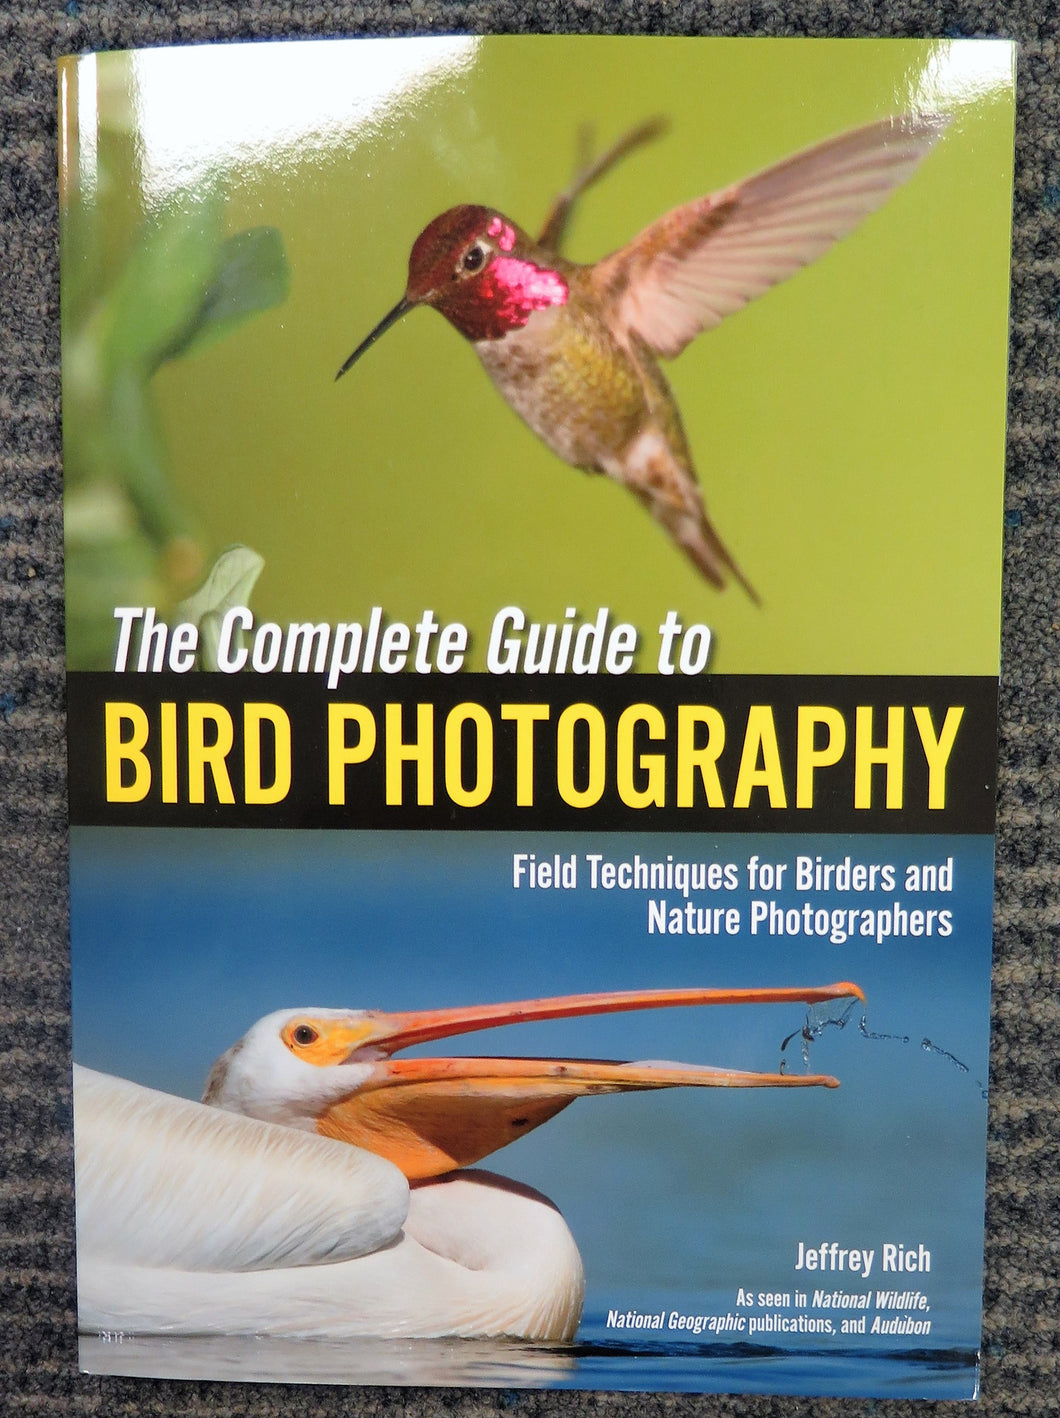 The Complete Guide to Bird Photography by Jeffery Rich